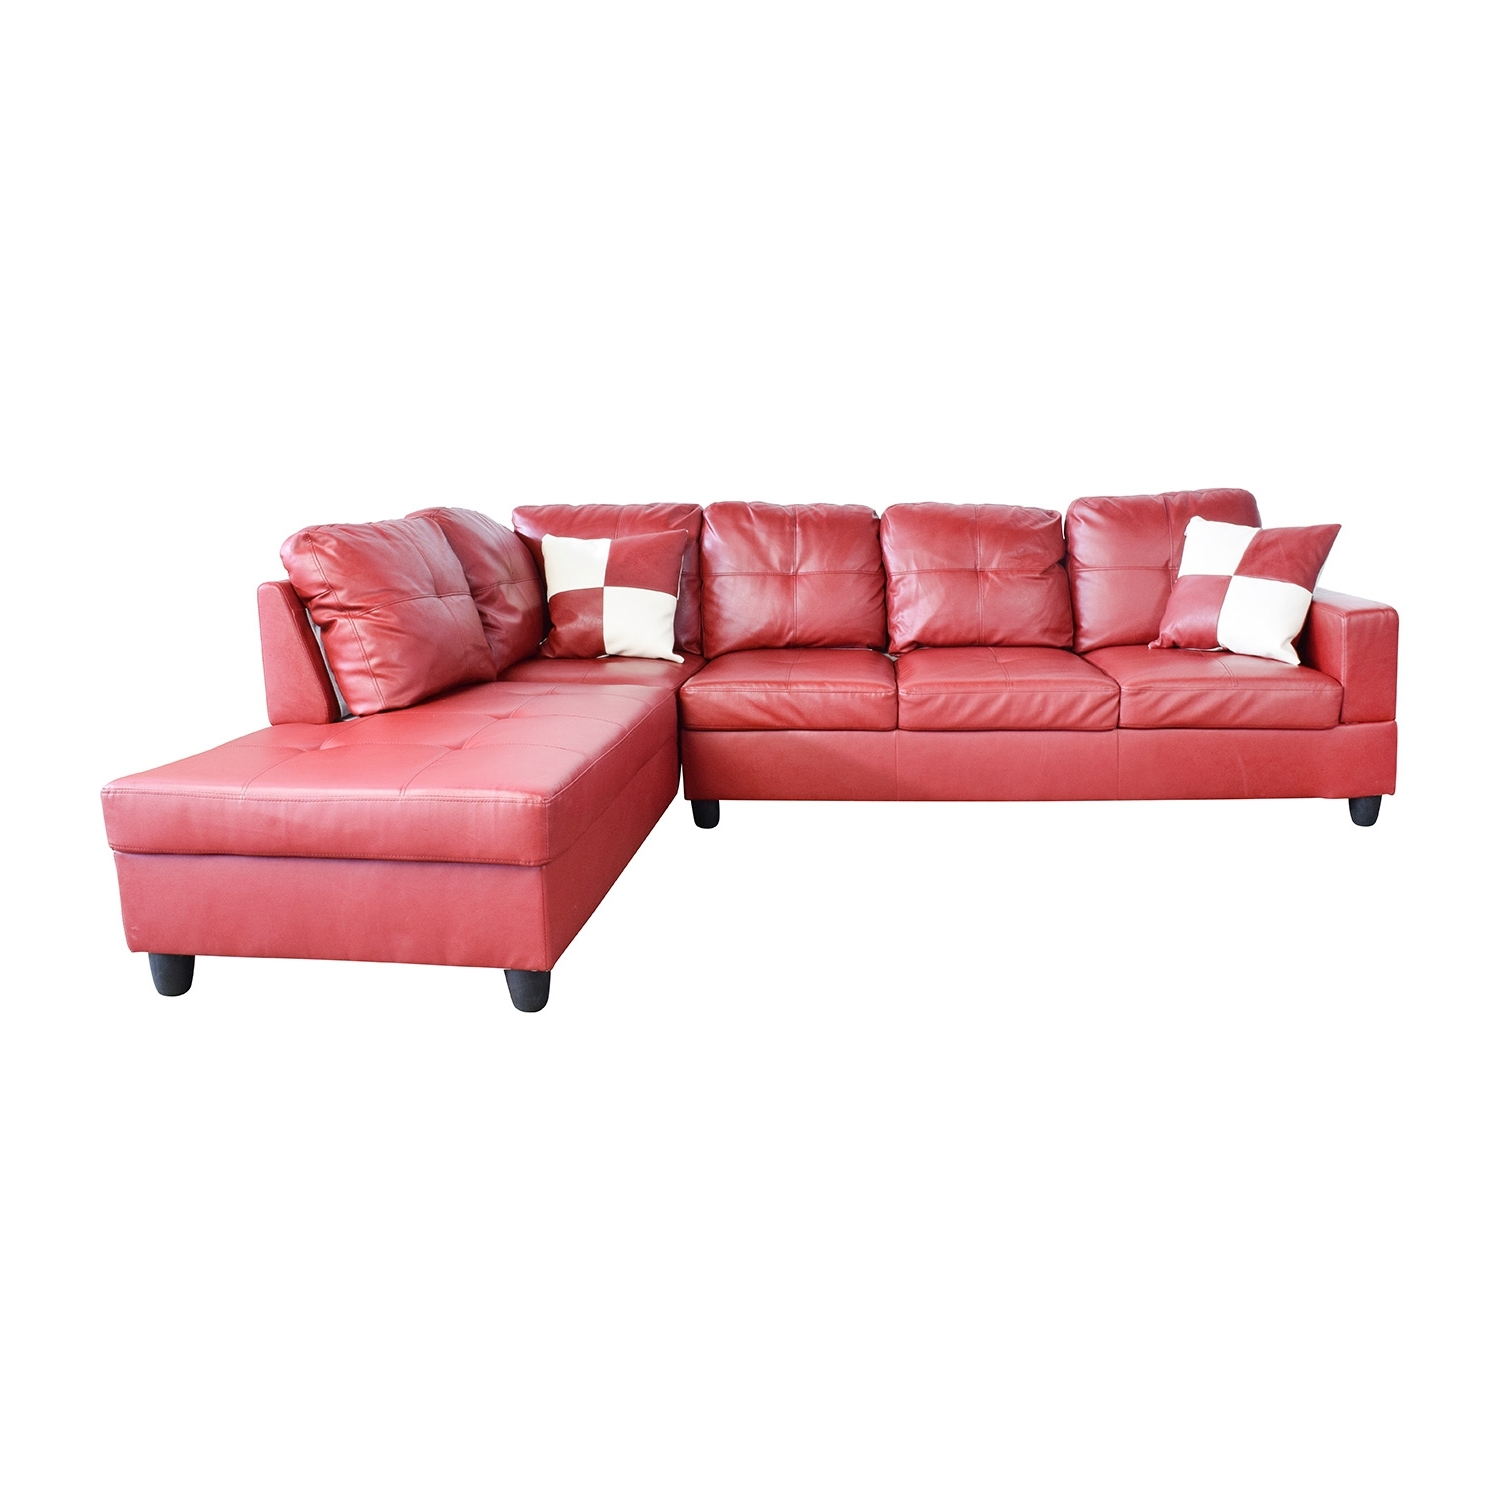 [%76% Off – Beverly Furniture Beverly Furniture Red Faux Leather With Regard To Most Recent Red Faux Leather Sectionals|Red Faux Leather Sectionals With Preferred 76% Off – Beverly Furniture Beverly Furniture Red Faux Leather|Current Red Faux Leather Sectionals Within 76% Off – Beverly Furniture Beverly Furniture Red Faux Leather|Trendy 76% Off – Beverly Furniture Beverly Furniture Red Faux Leather Intended For Red Faux Leather Sectionals%] (View 10 of 15)